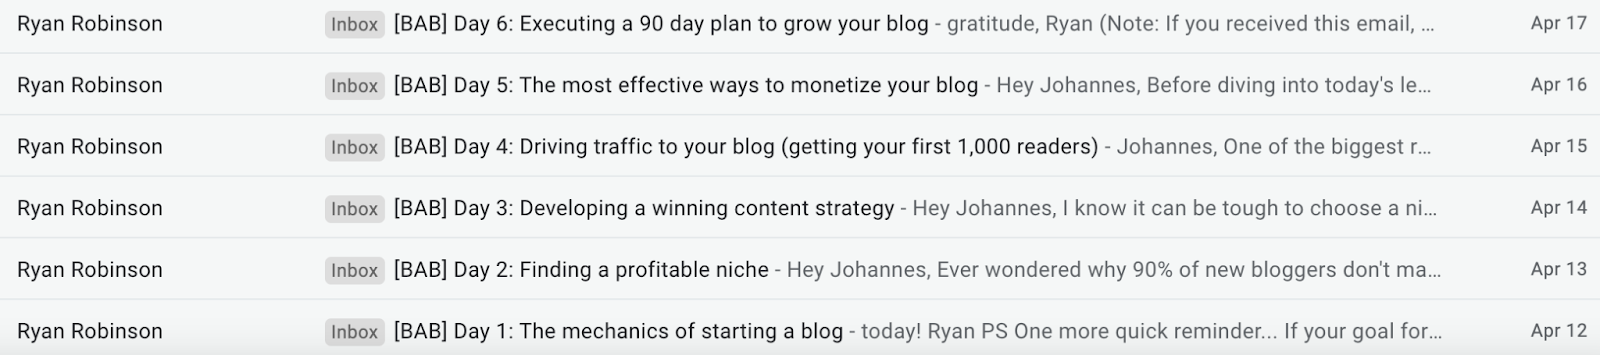 inbox with emails from ryan robinson